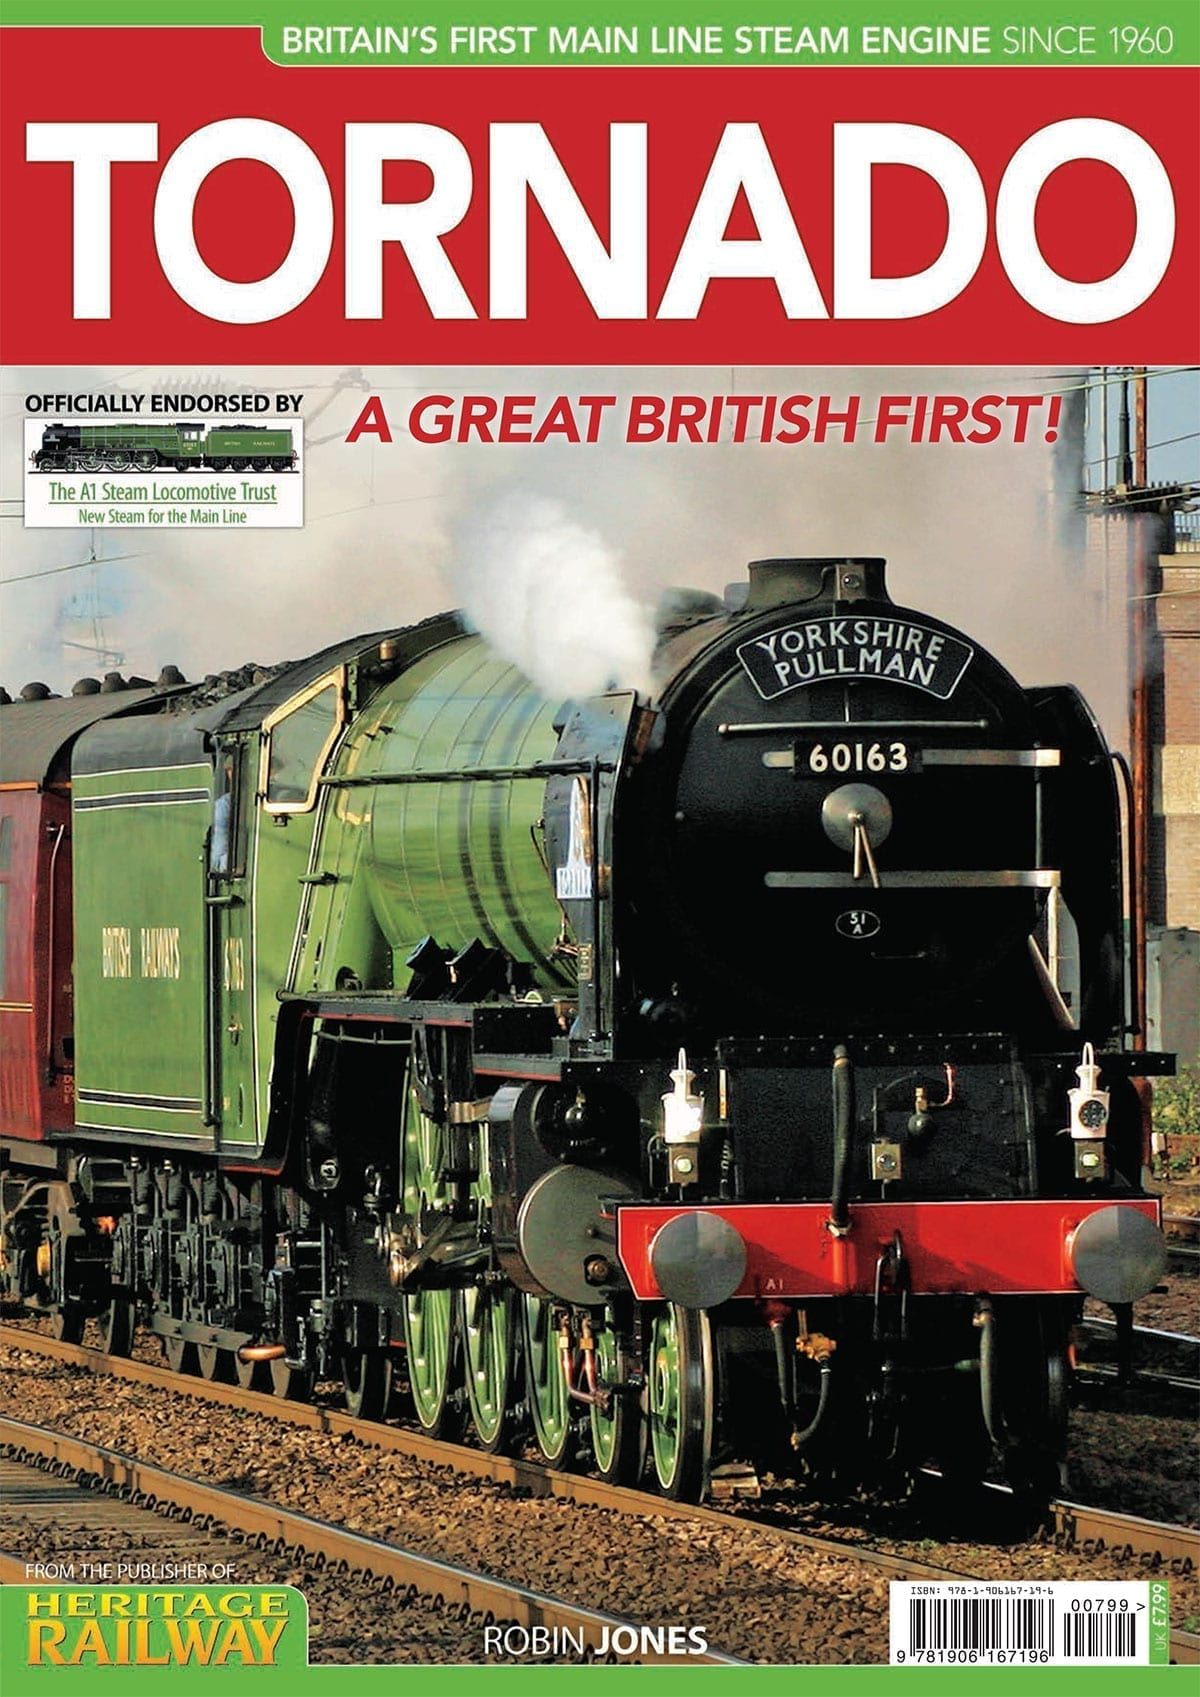 Tornado: A Great British First